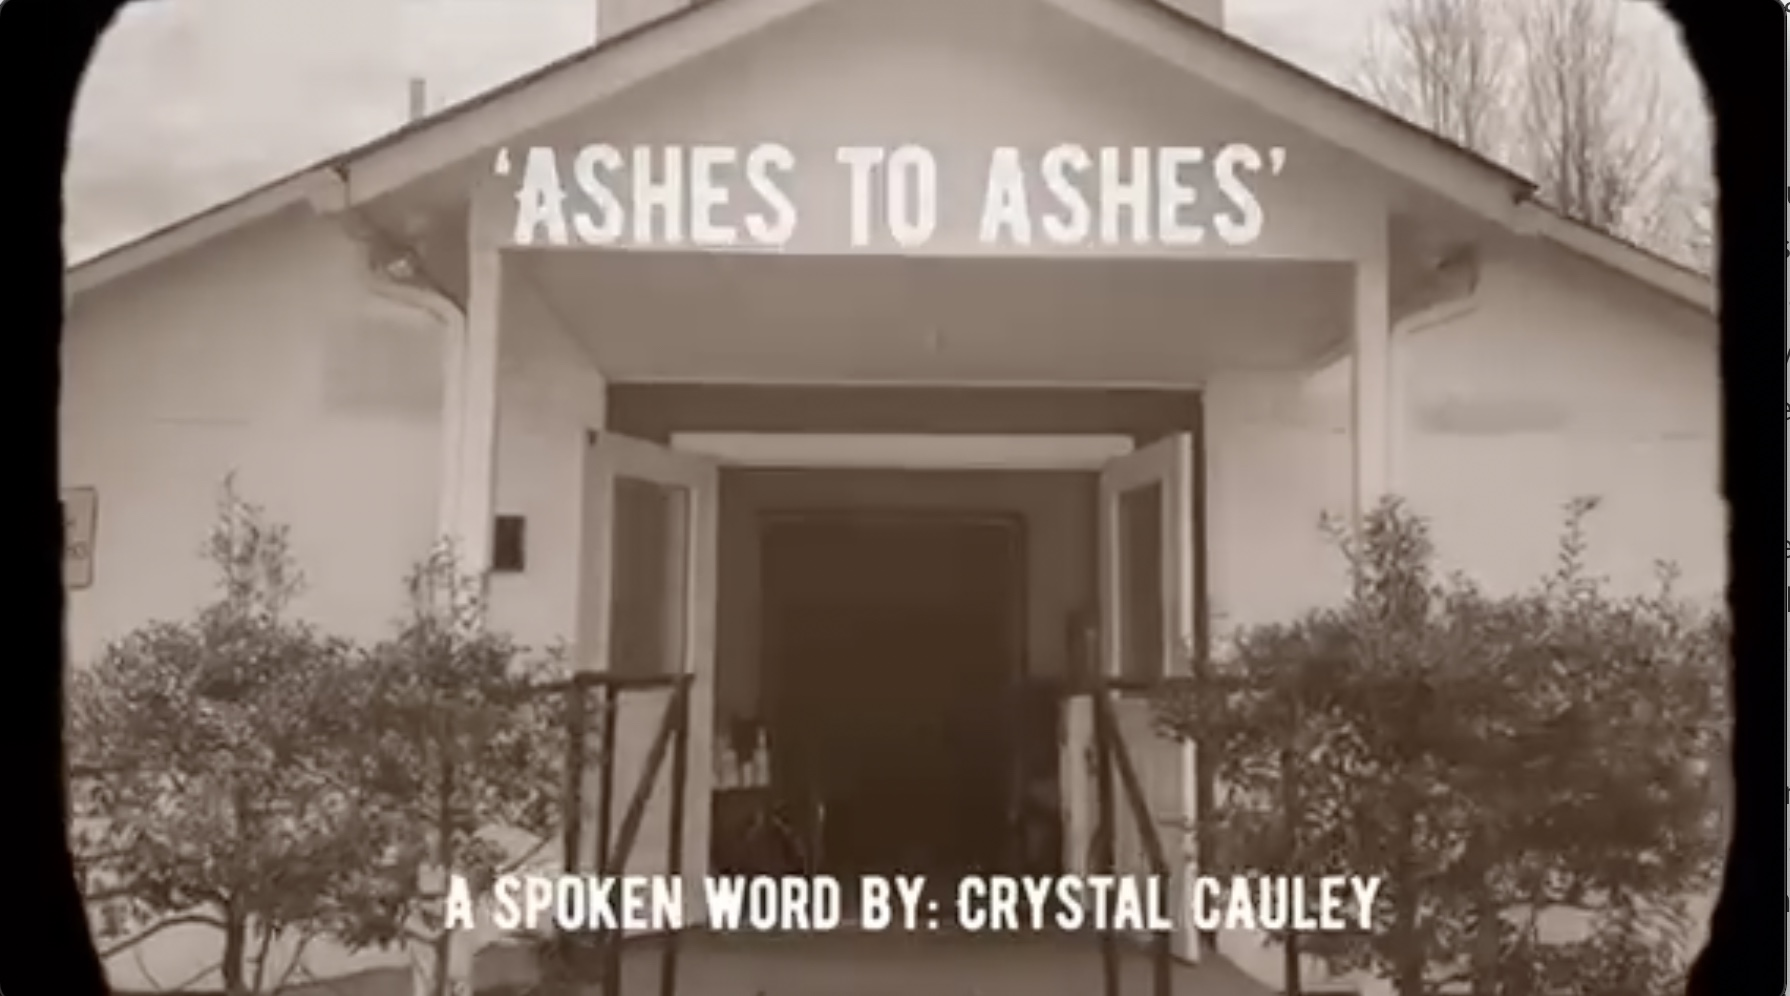 Ashes to Ashes A Spoken Word by Crystal Cauley